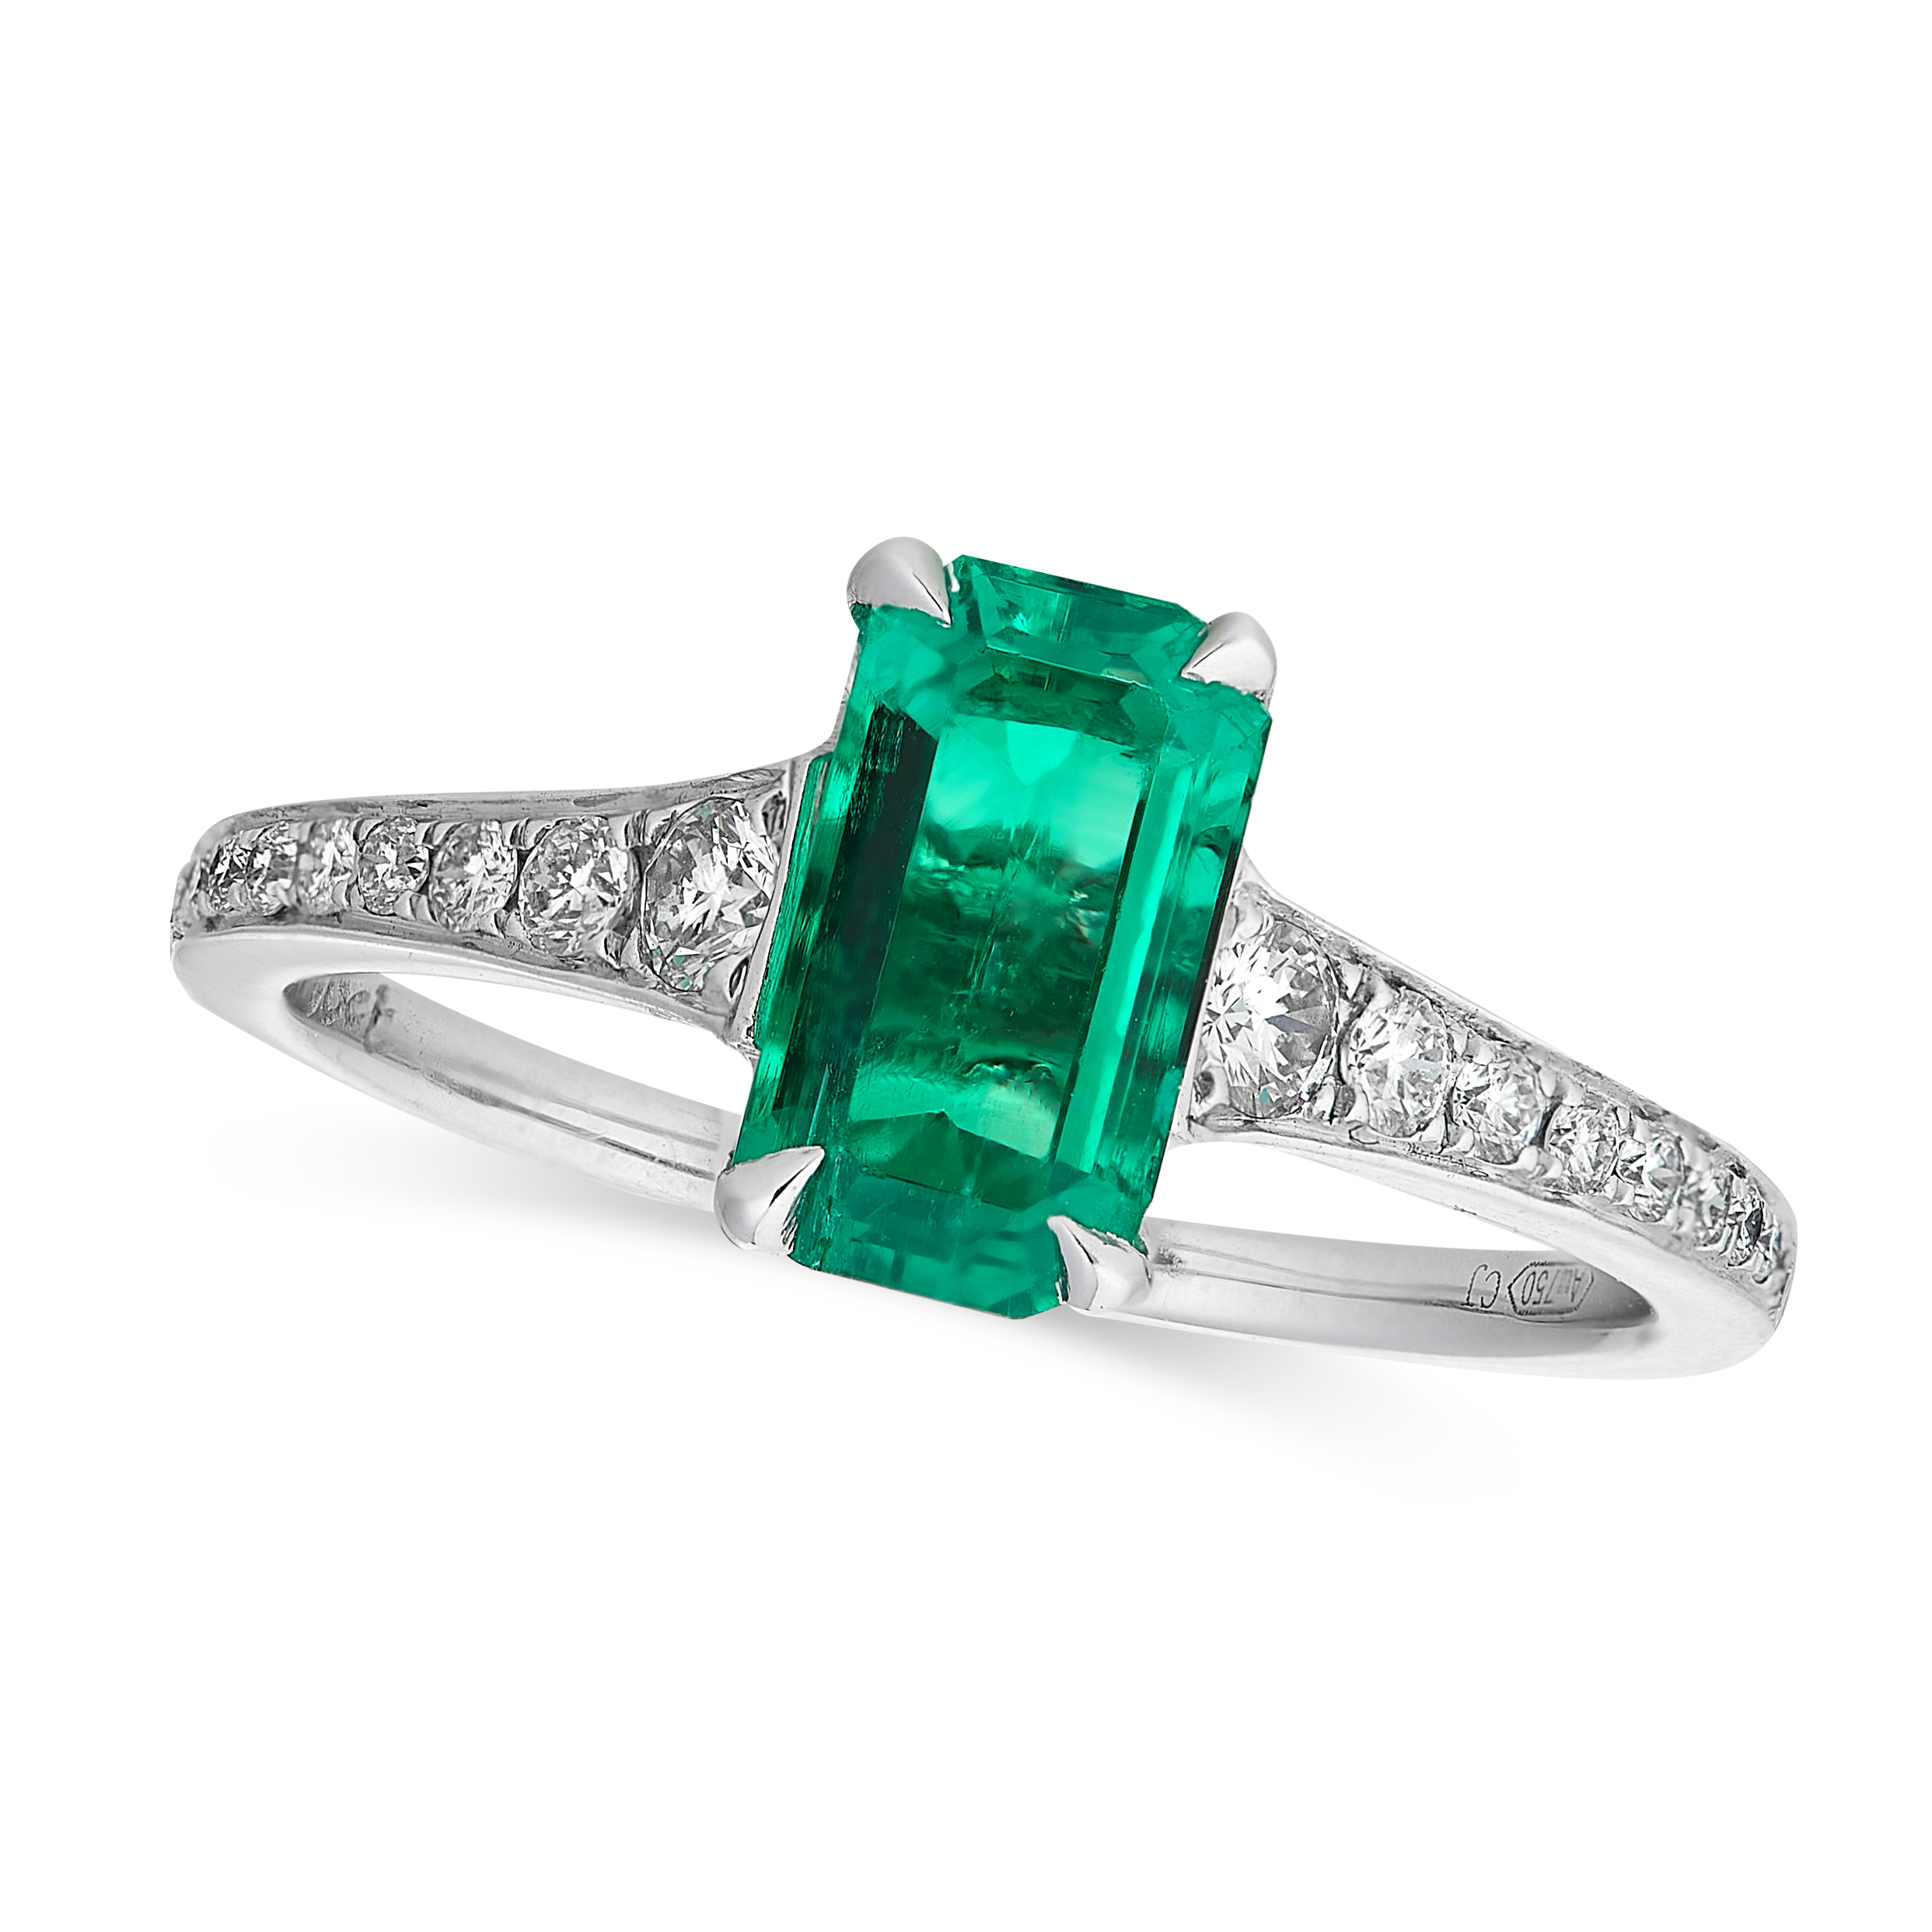 A COLOMBIAN EMERALD AND DIAMOND RING in 18ct white gold, set with an emerald cut emerald of 1.42